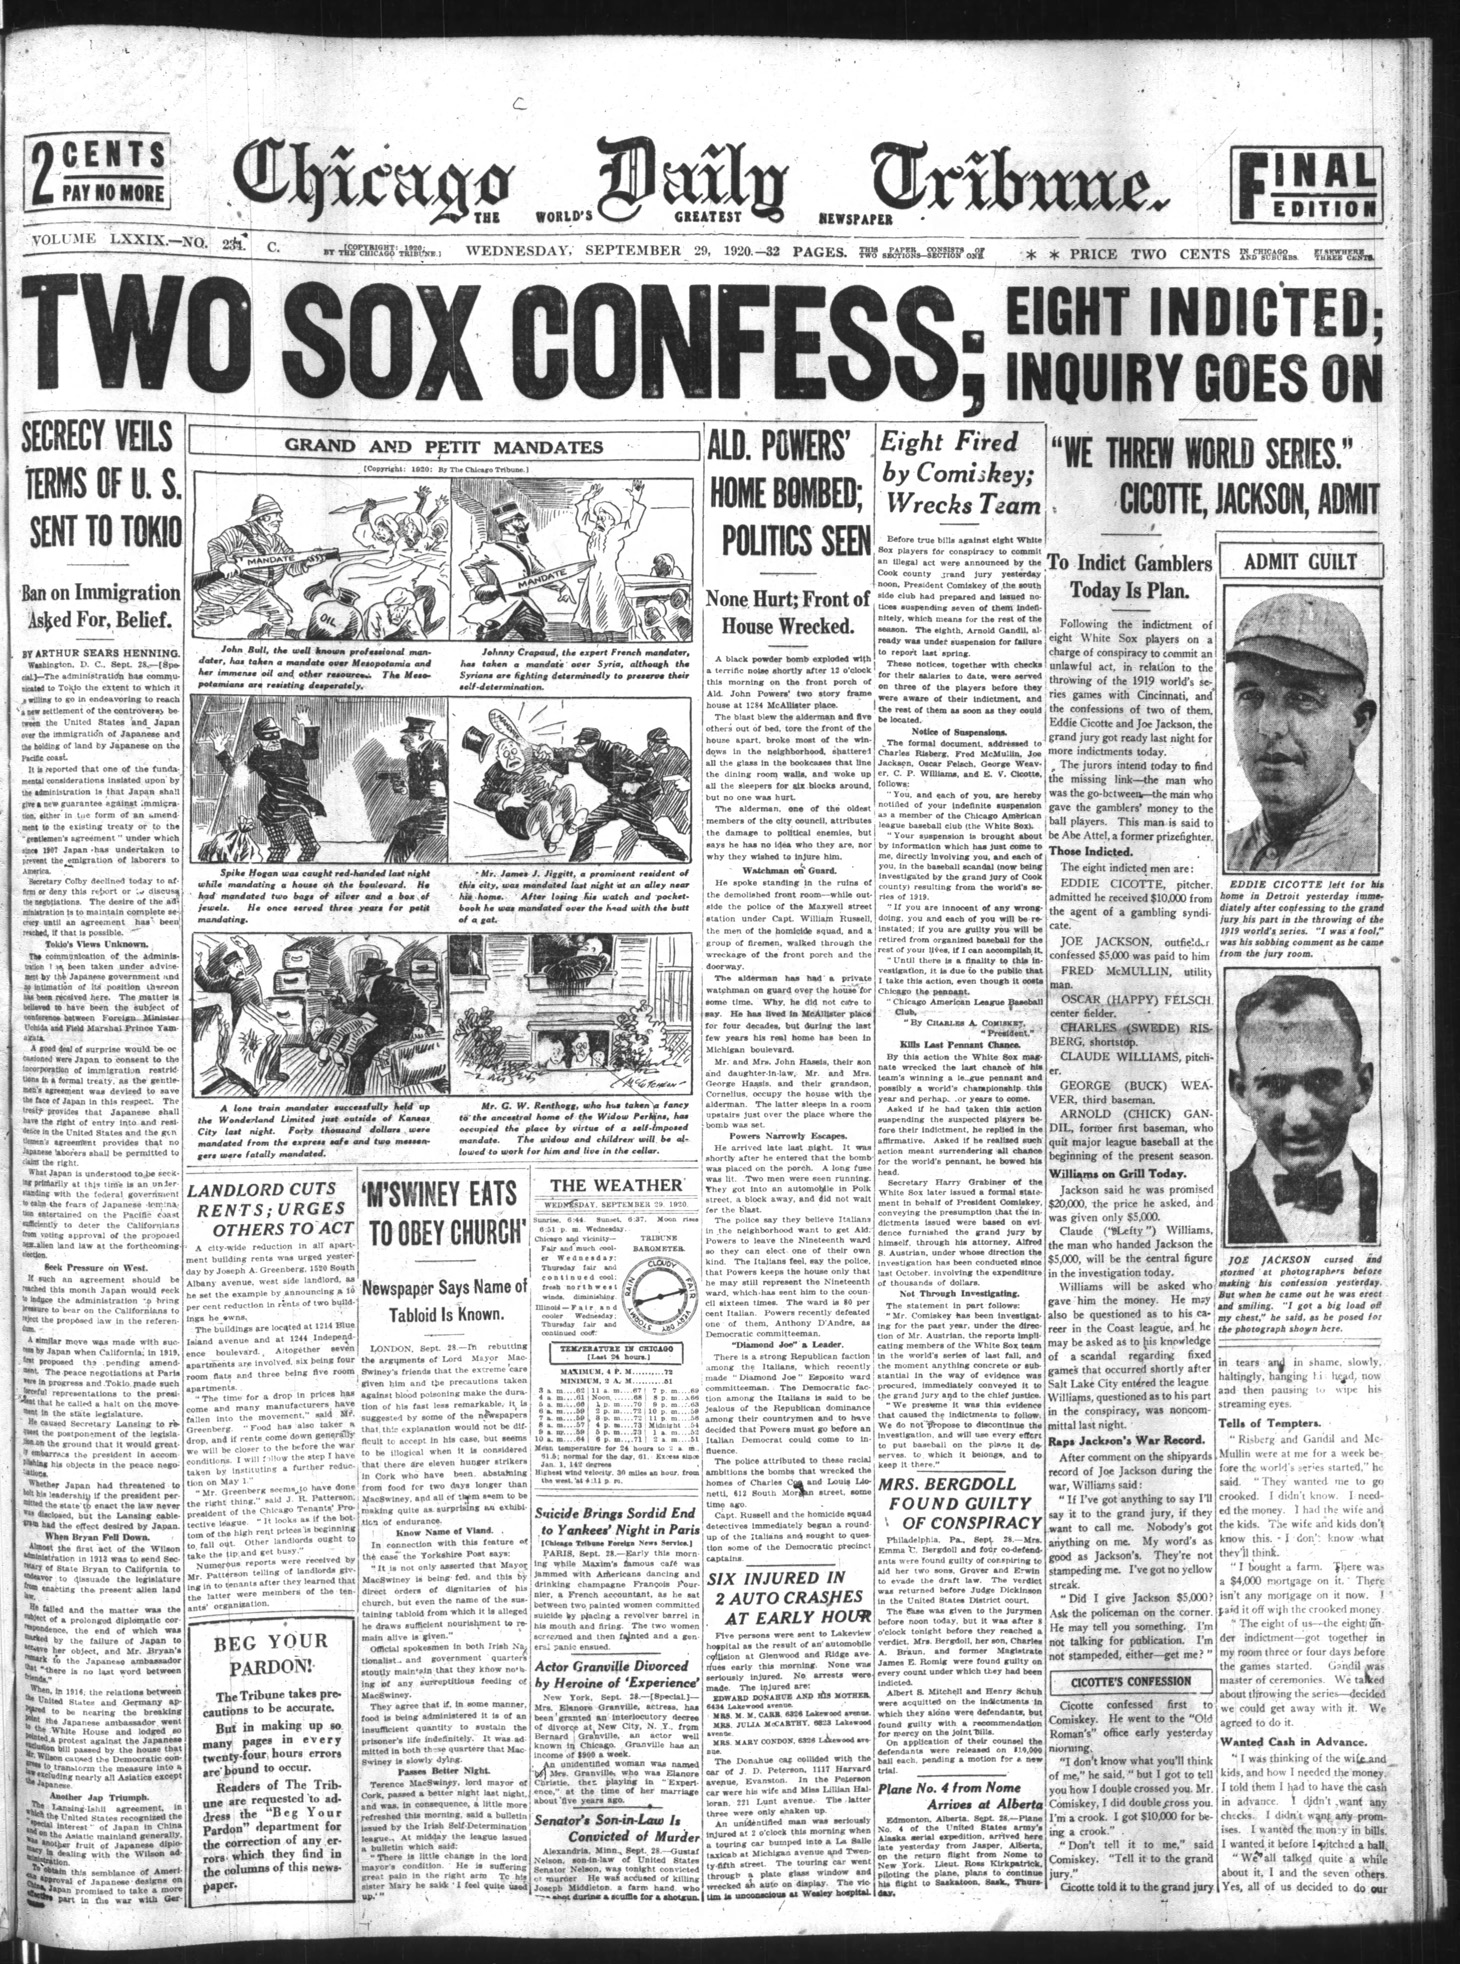 black sox scandal essay The black sox scandal: chicago throws the 1919 world series essaysyou've probably heard of the chicago black sox scandal, but don't know what it's about in the 1919 world series eight players took money from gamblers to fix the series so that the cincinnati reds would win.